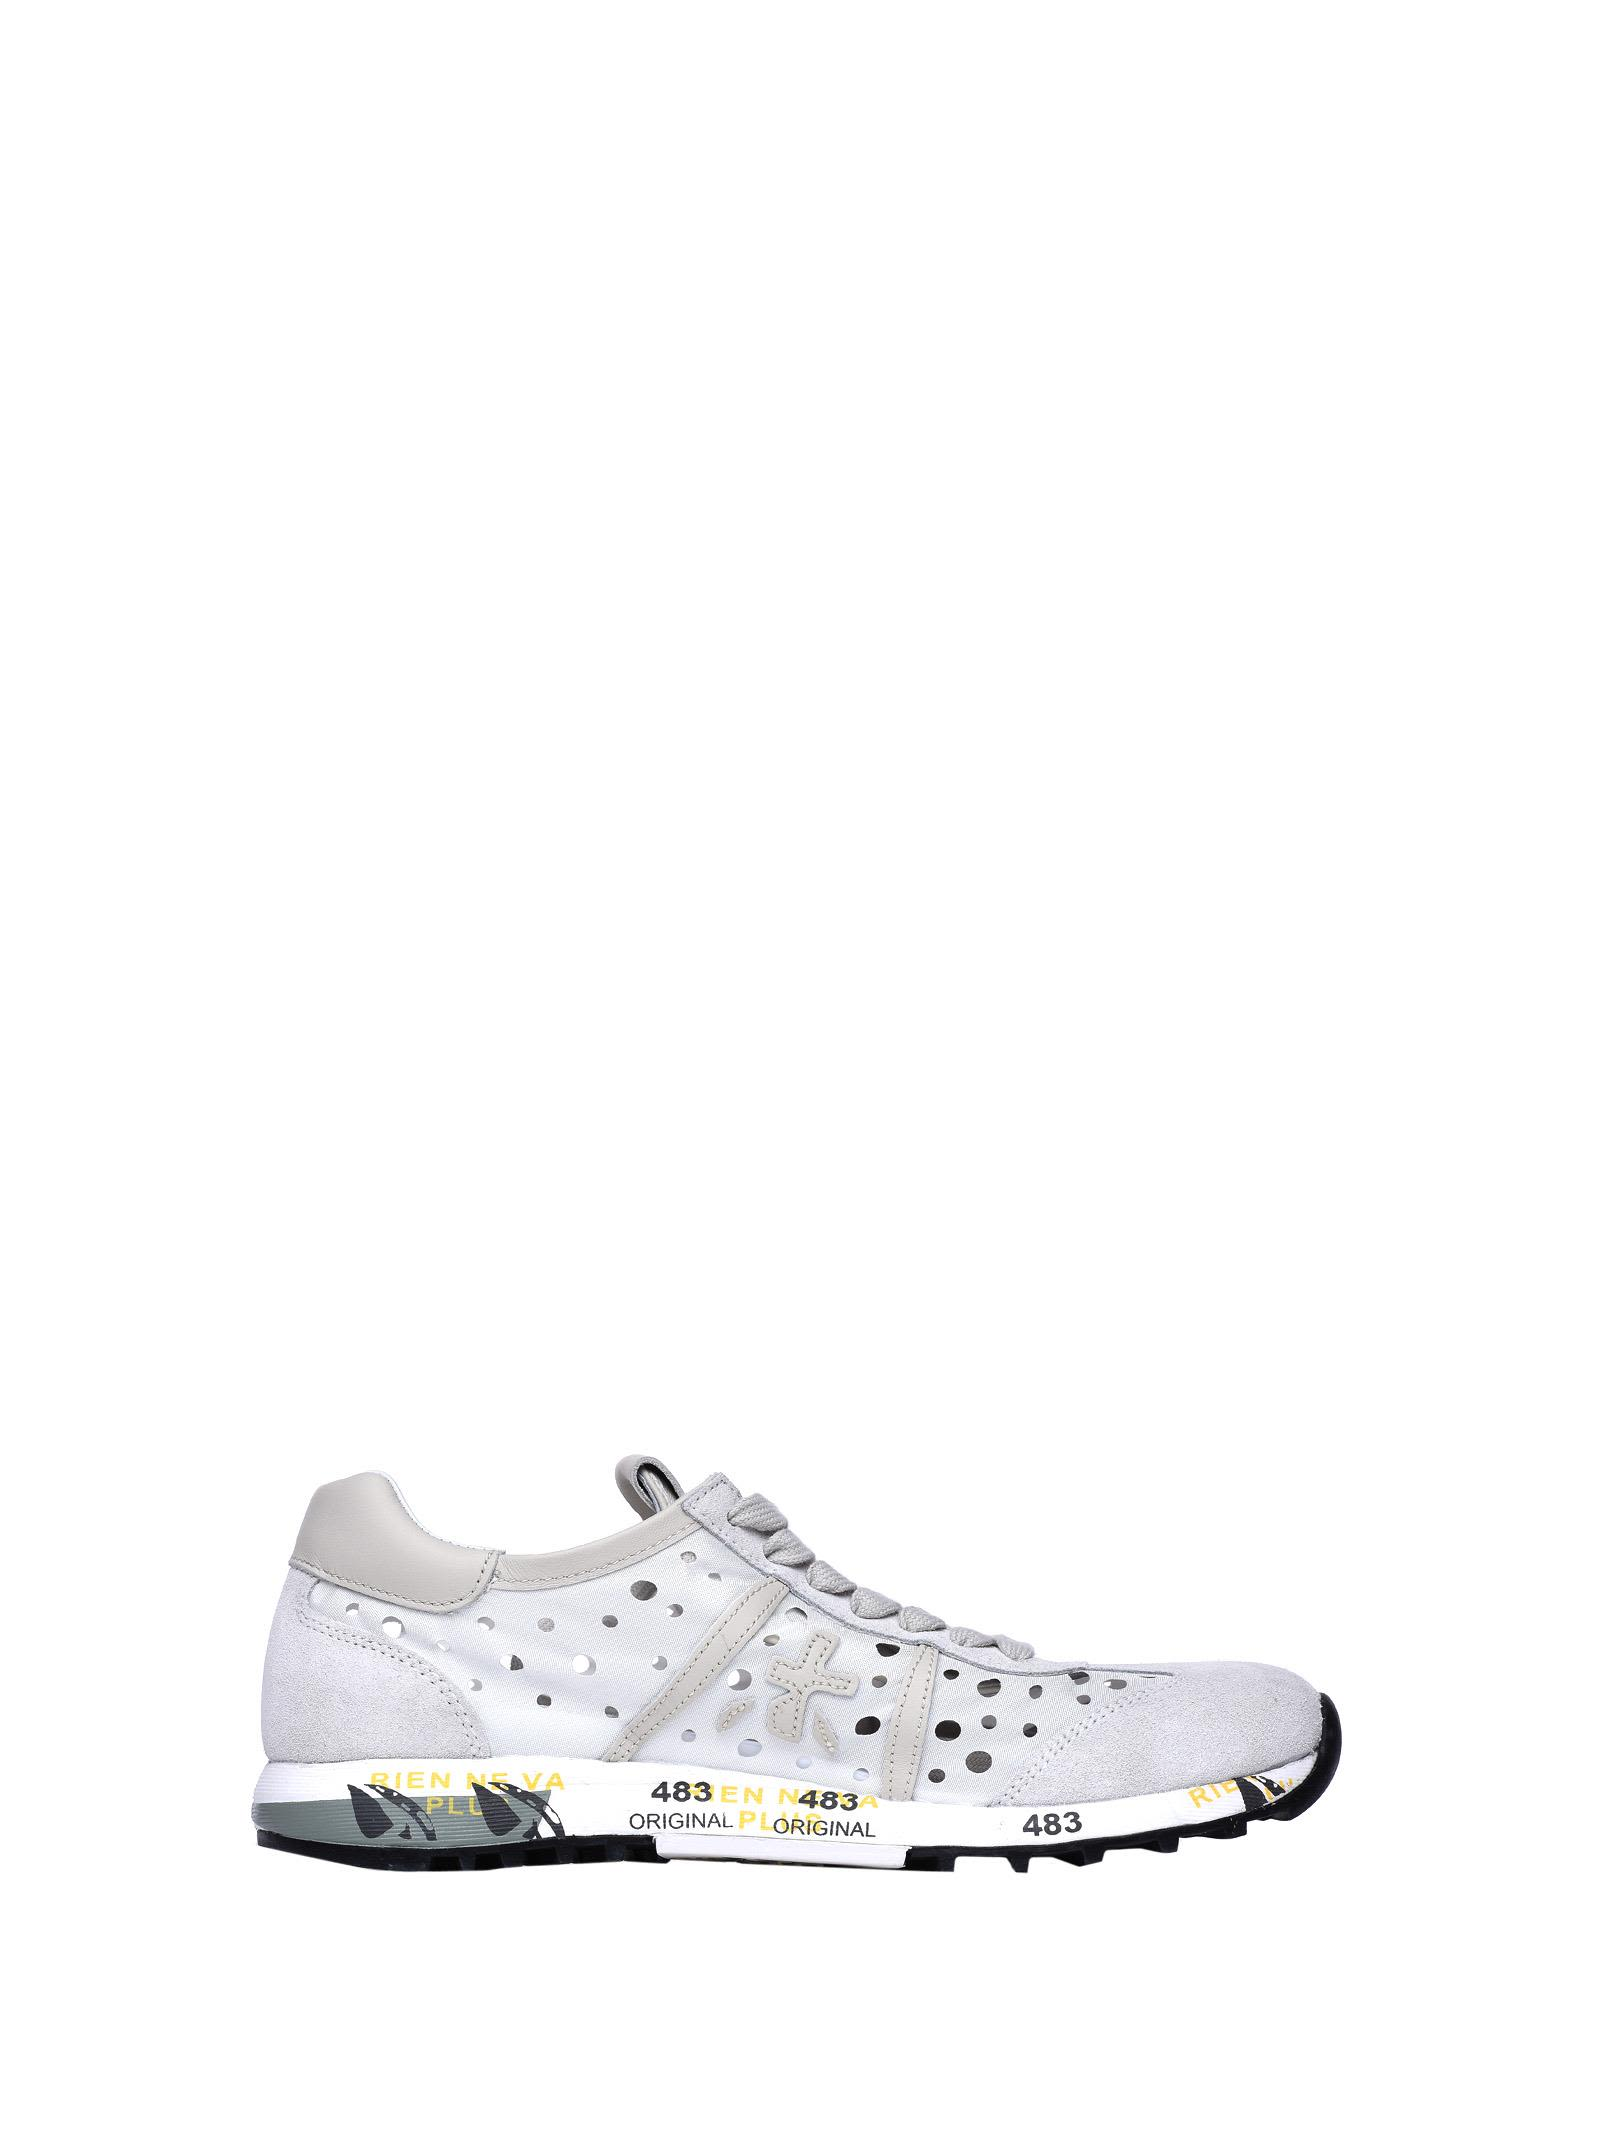 Cheap Sale Cost Premiata Lucy-d 460e White Sneakers Buy Cheap Nicekicks From China Sale Collections cMKXCS